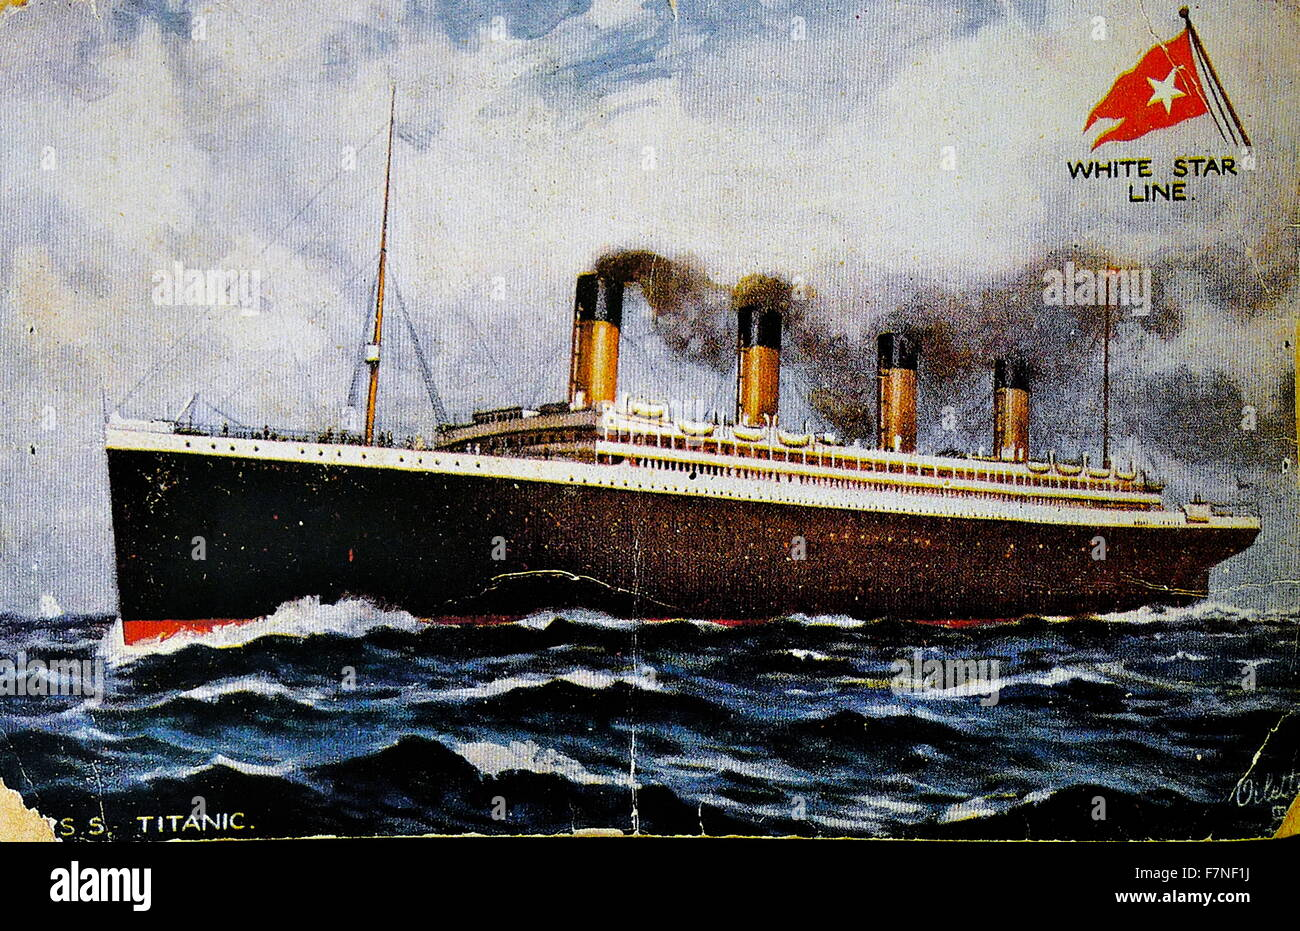 Pre-disaster postcard, front depicting the Titanic. Dated 1907 - Stock Image